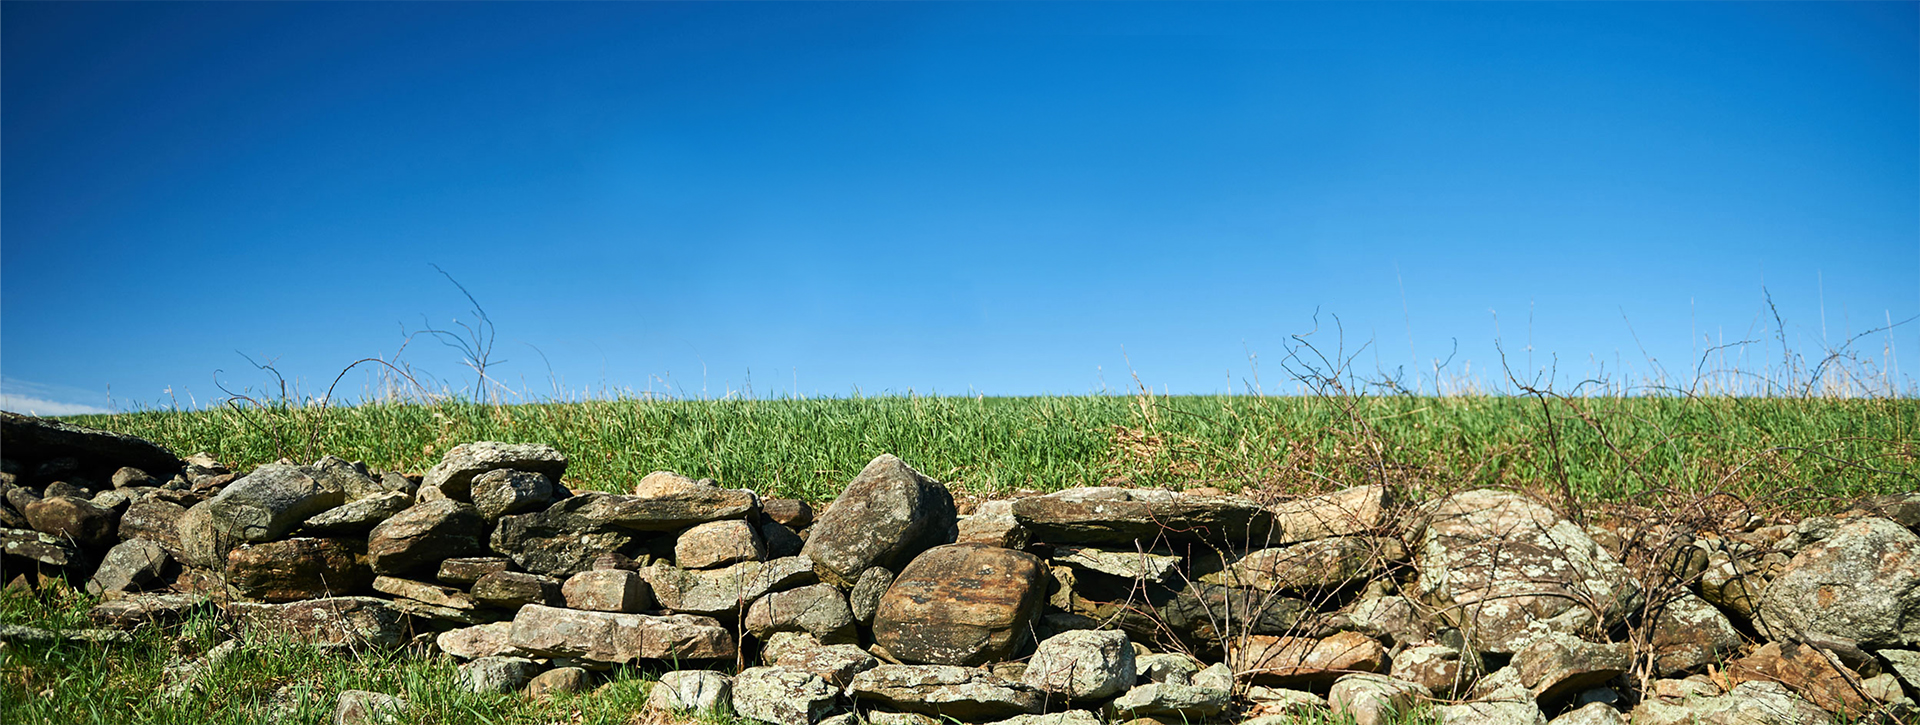 A stone wall in a wide-open field on a sunny day.